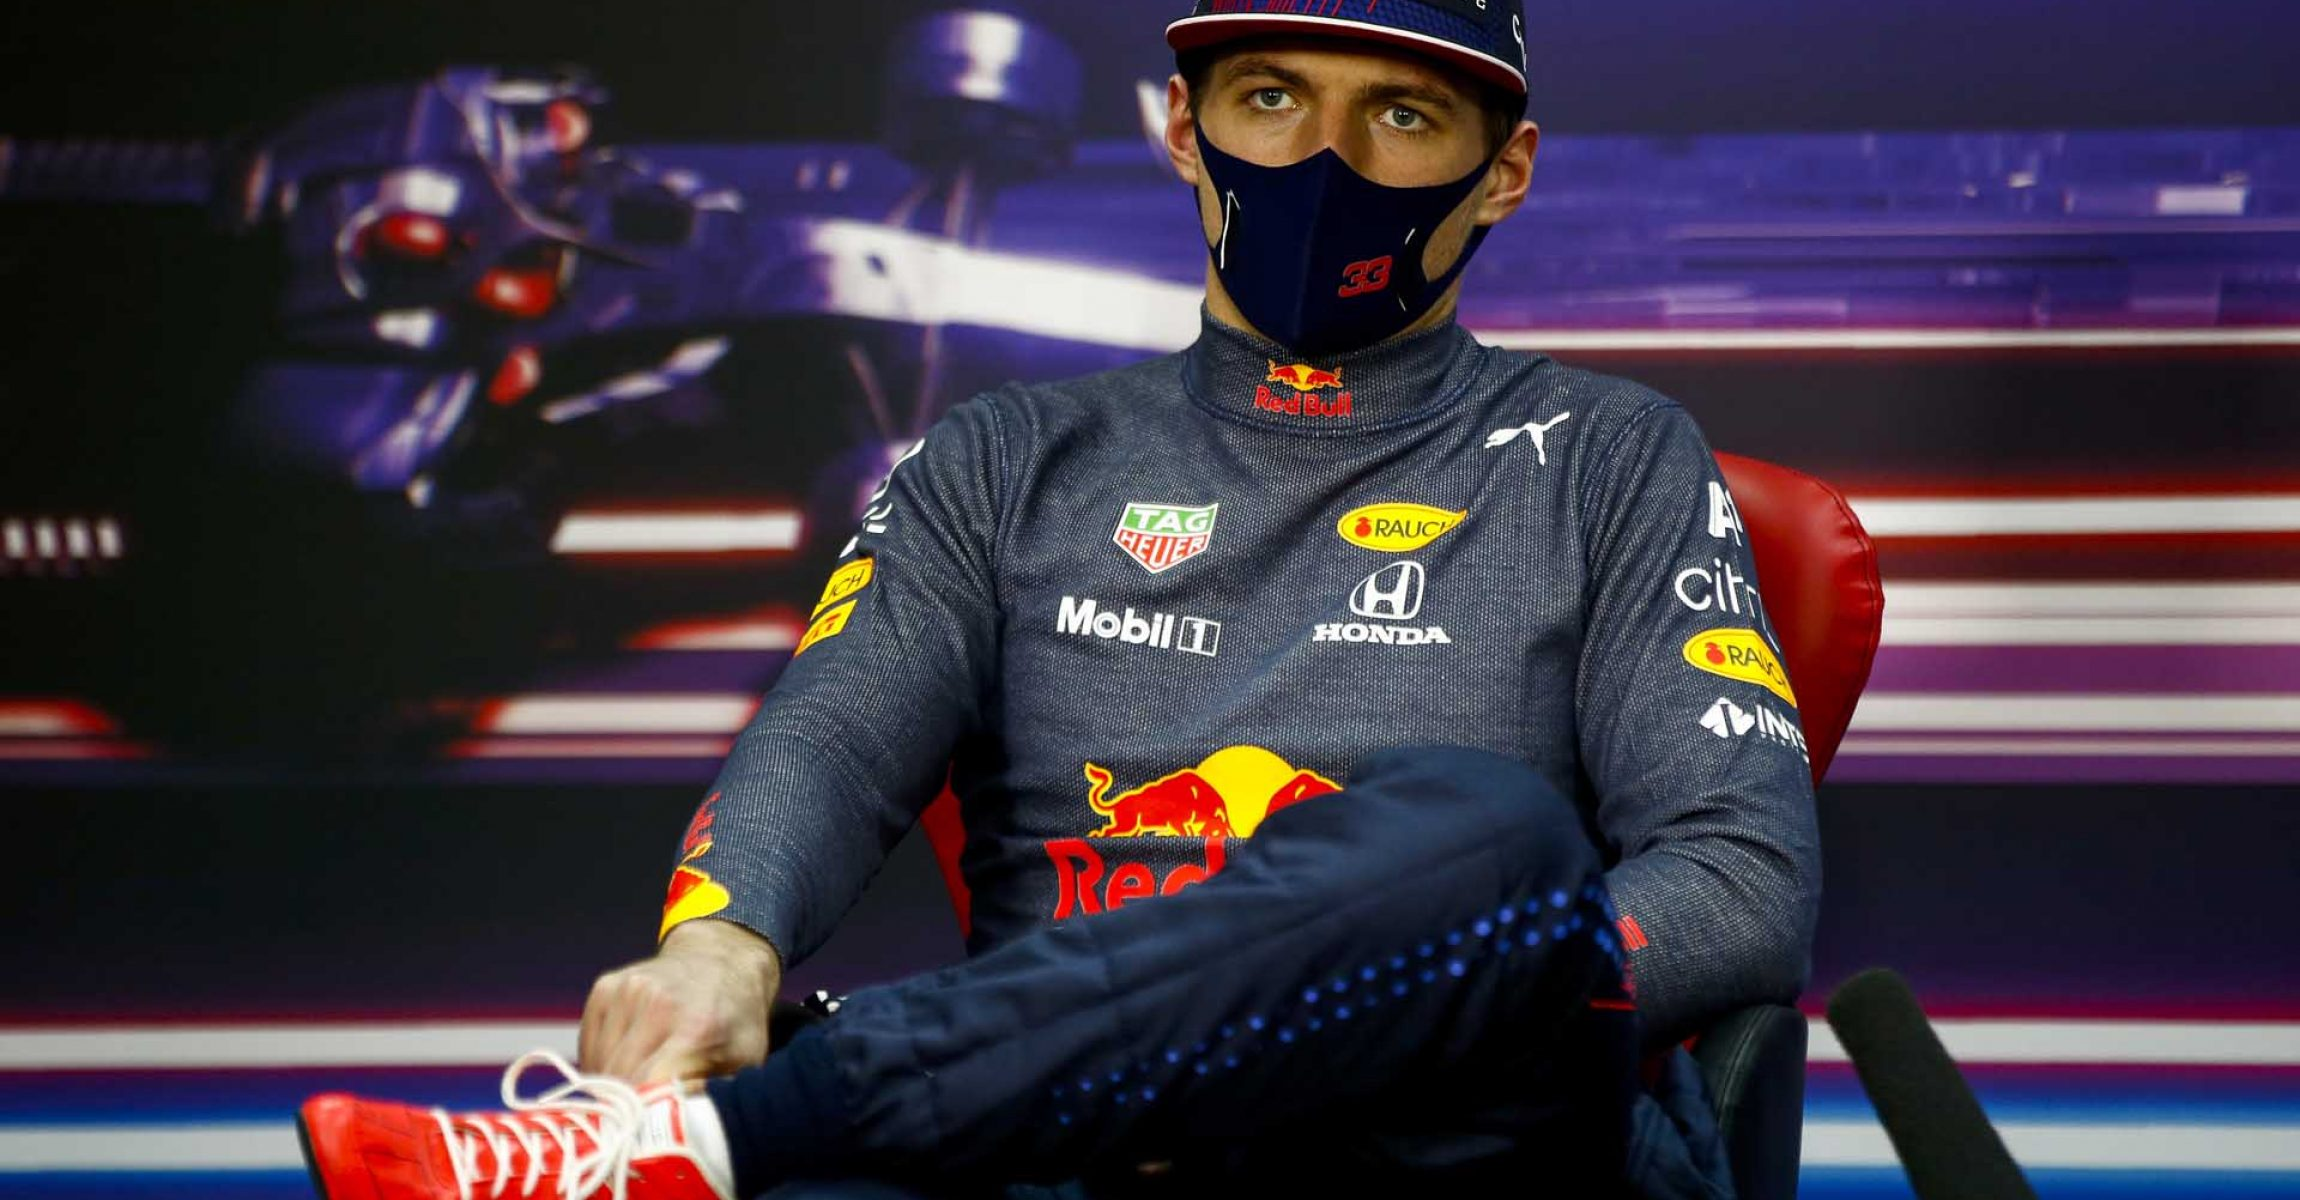 BAHRAIN, BAHRAIN - MARCH 28: Second placed, Max Verstappen of Netherlands and Red Bull Racing talks during a Press Conference after the F1 Grand Prix of Bahrain at Bahrain International Circuit on March 28, 2021 in Bahrain, Bahrain. (Photo by Andy Hone - Pool/Getty Images)